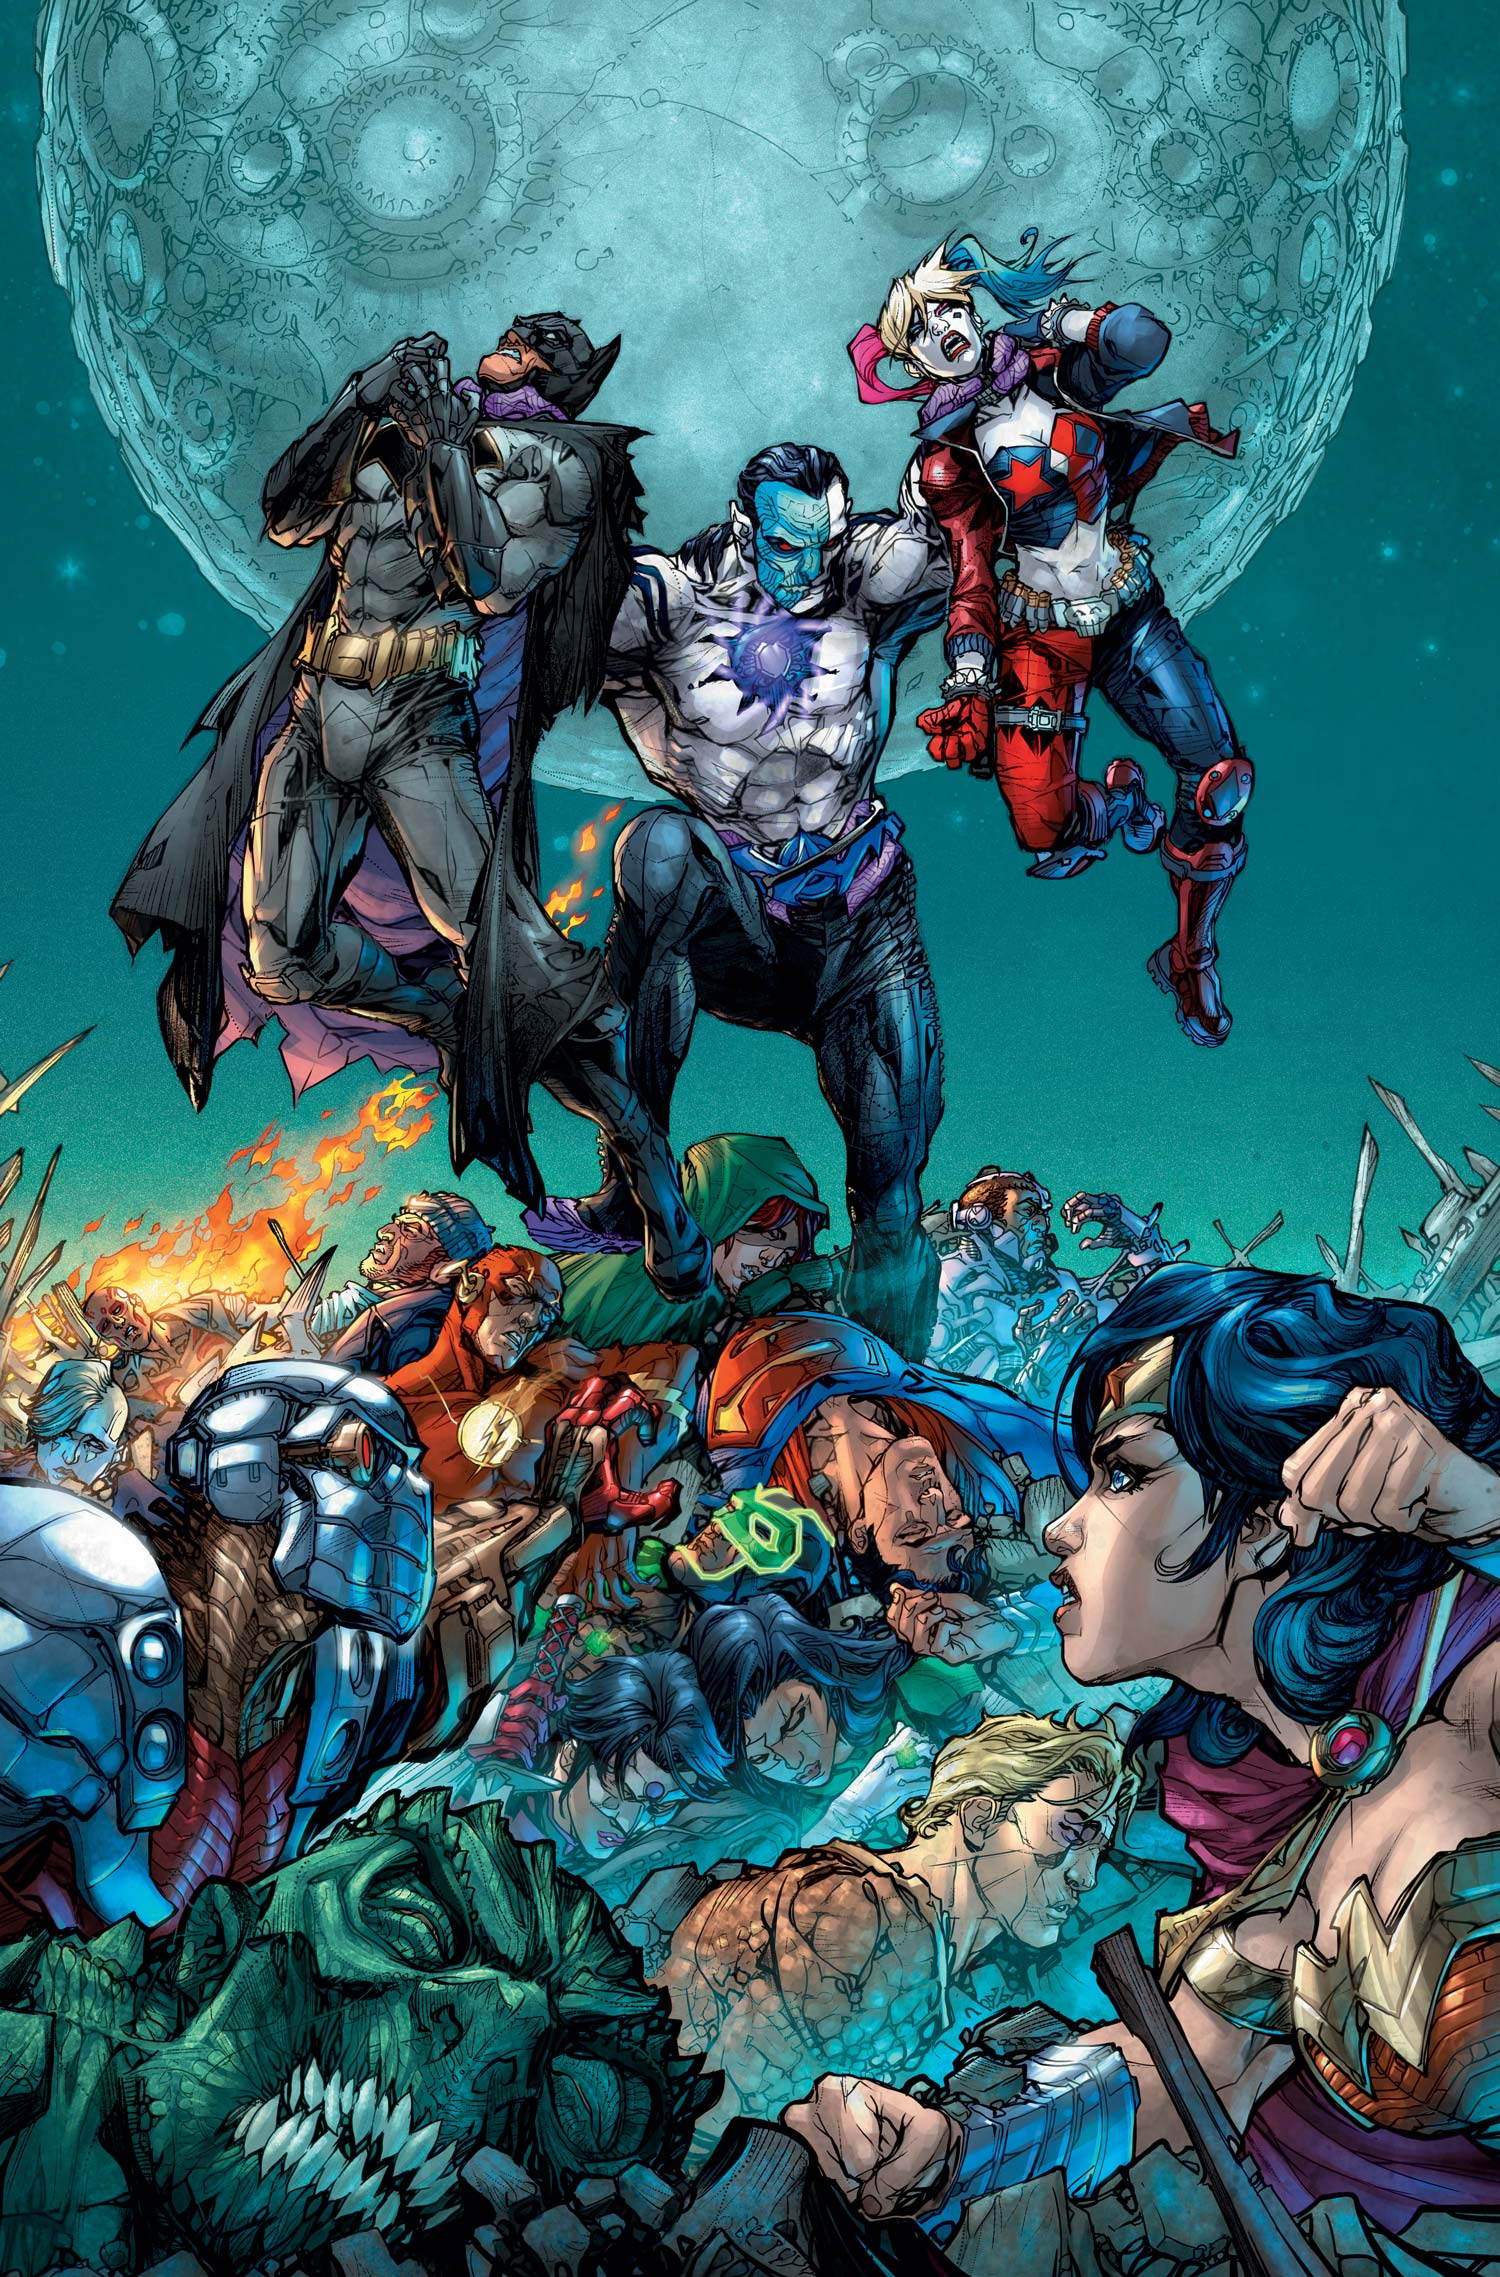 Justice League vs Suicide Squad Vol 1 6 Textless.jpg